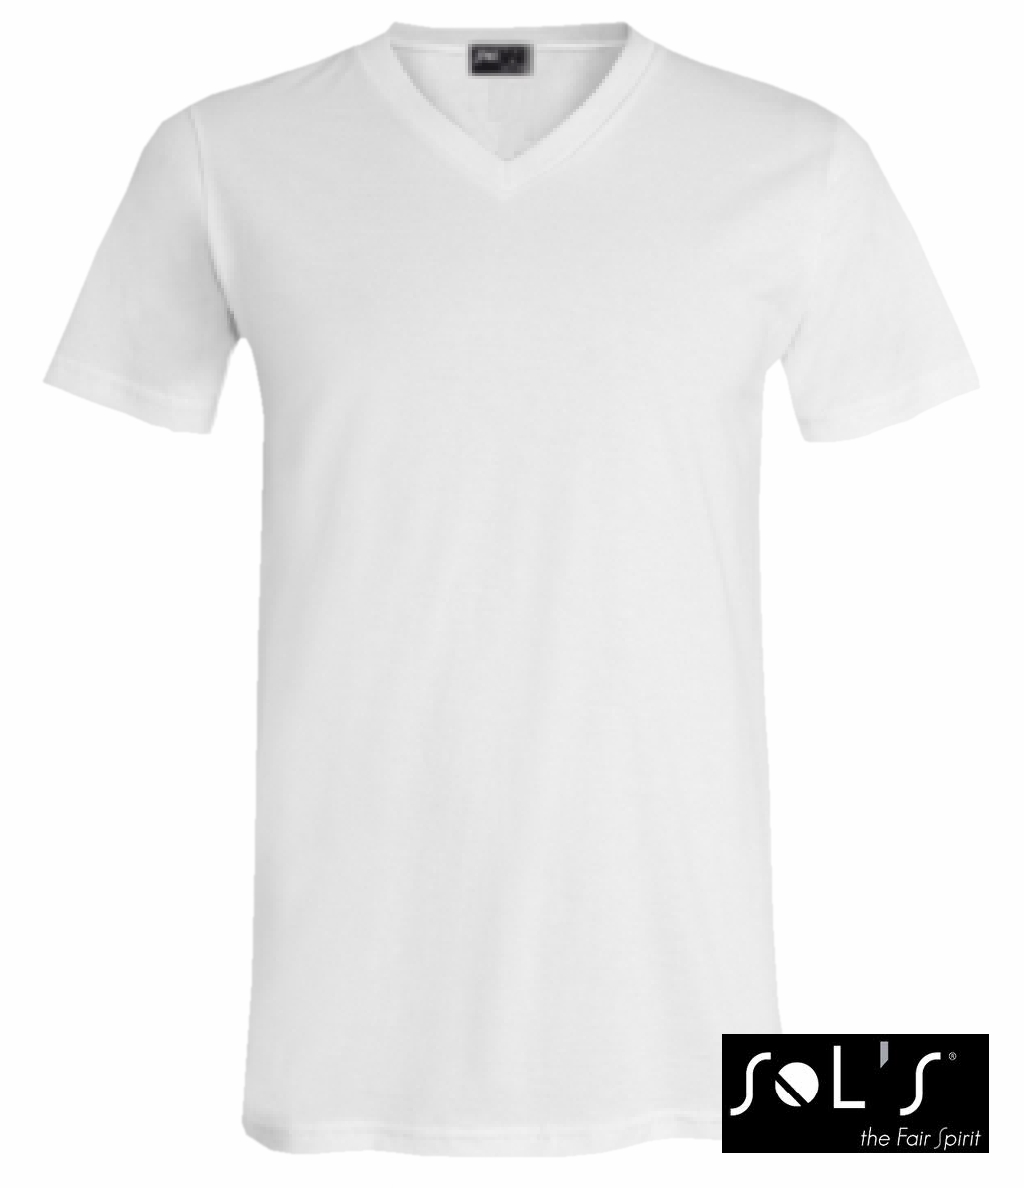 SOL´s V-Neck Short Sleeve Tee Shirt Master (white) 12,69 €